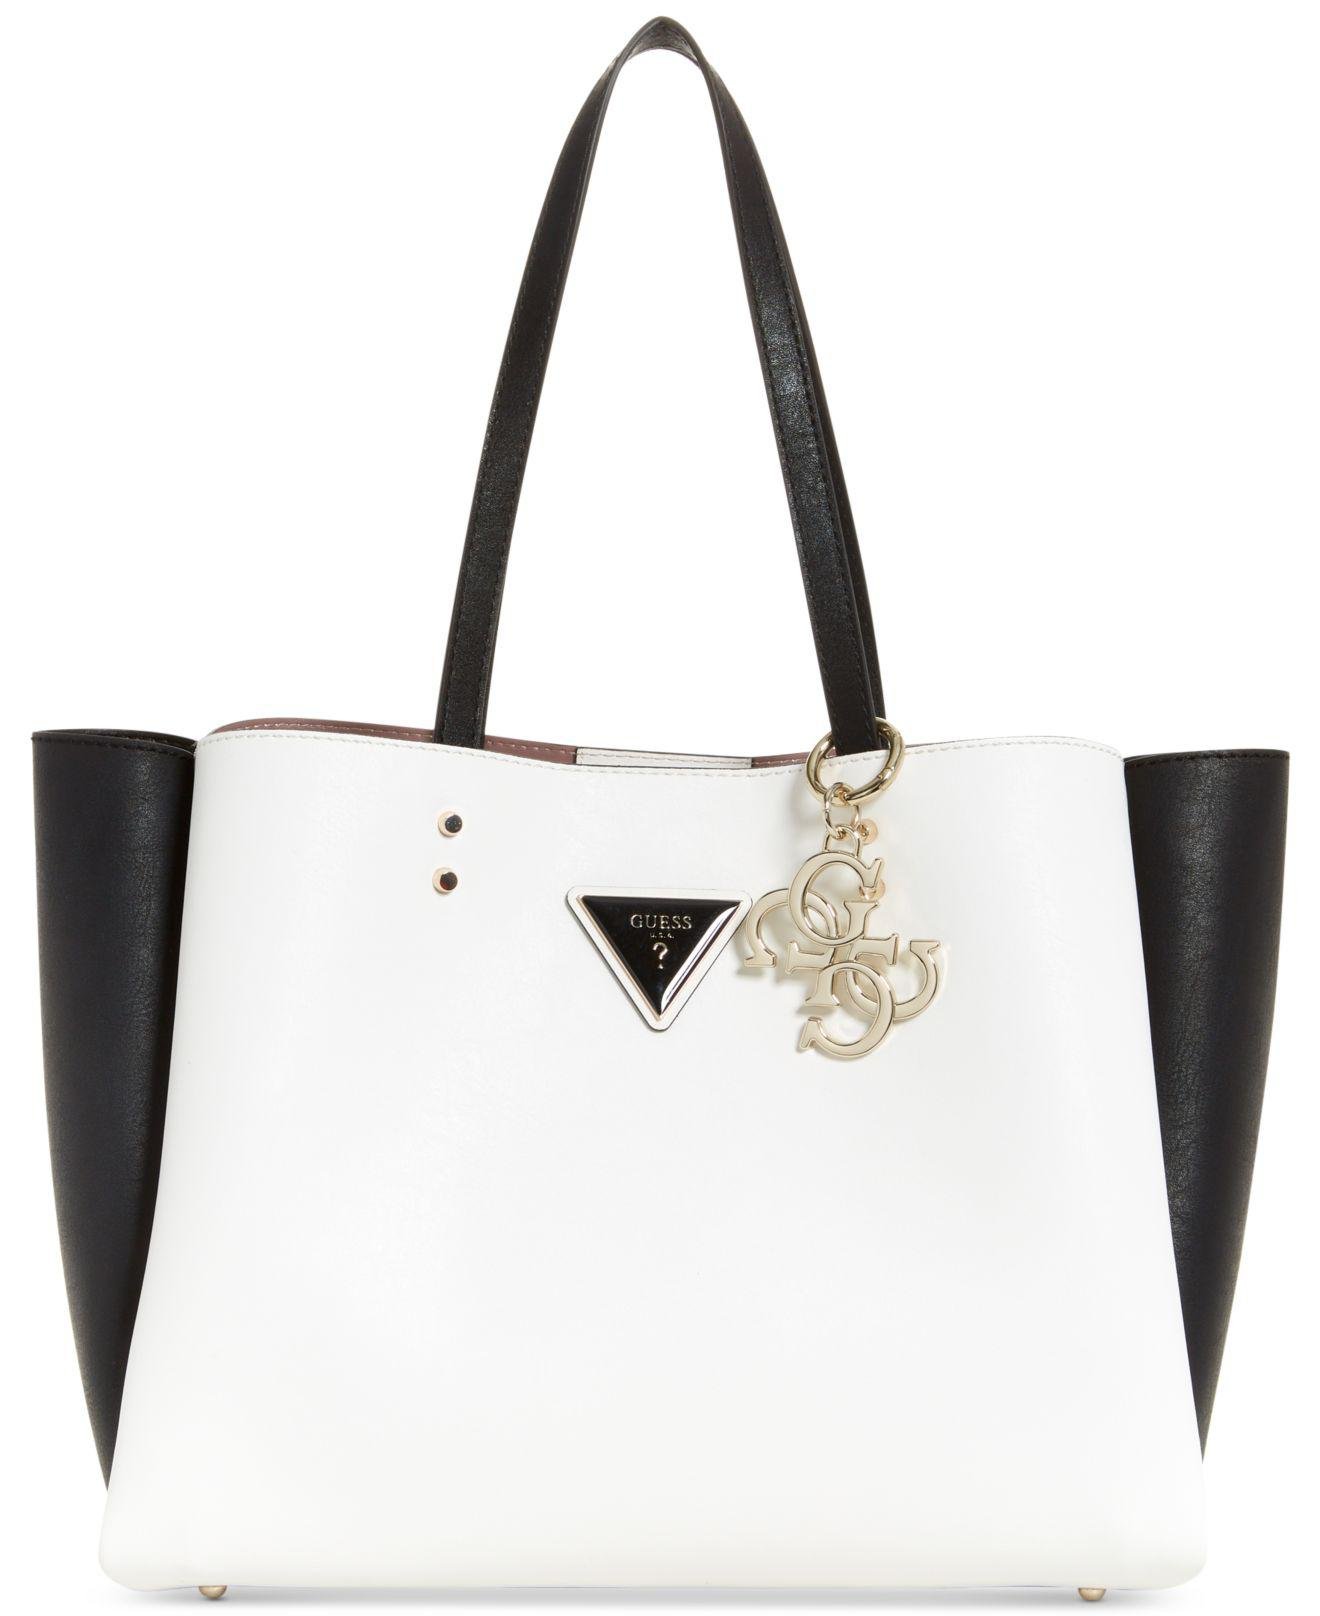 Lyst - Guess Jade Girlfriend Tote e18a9c2462e4a